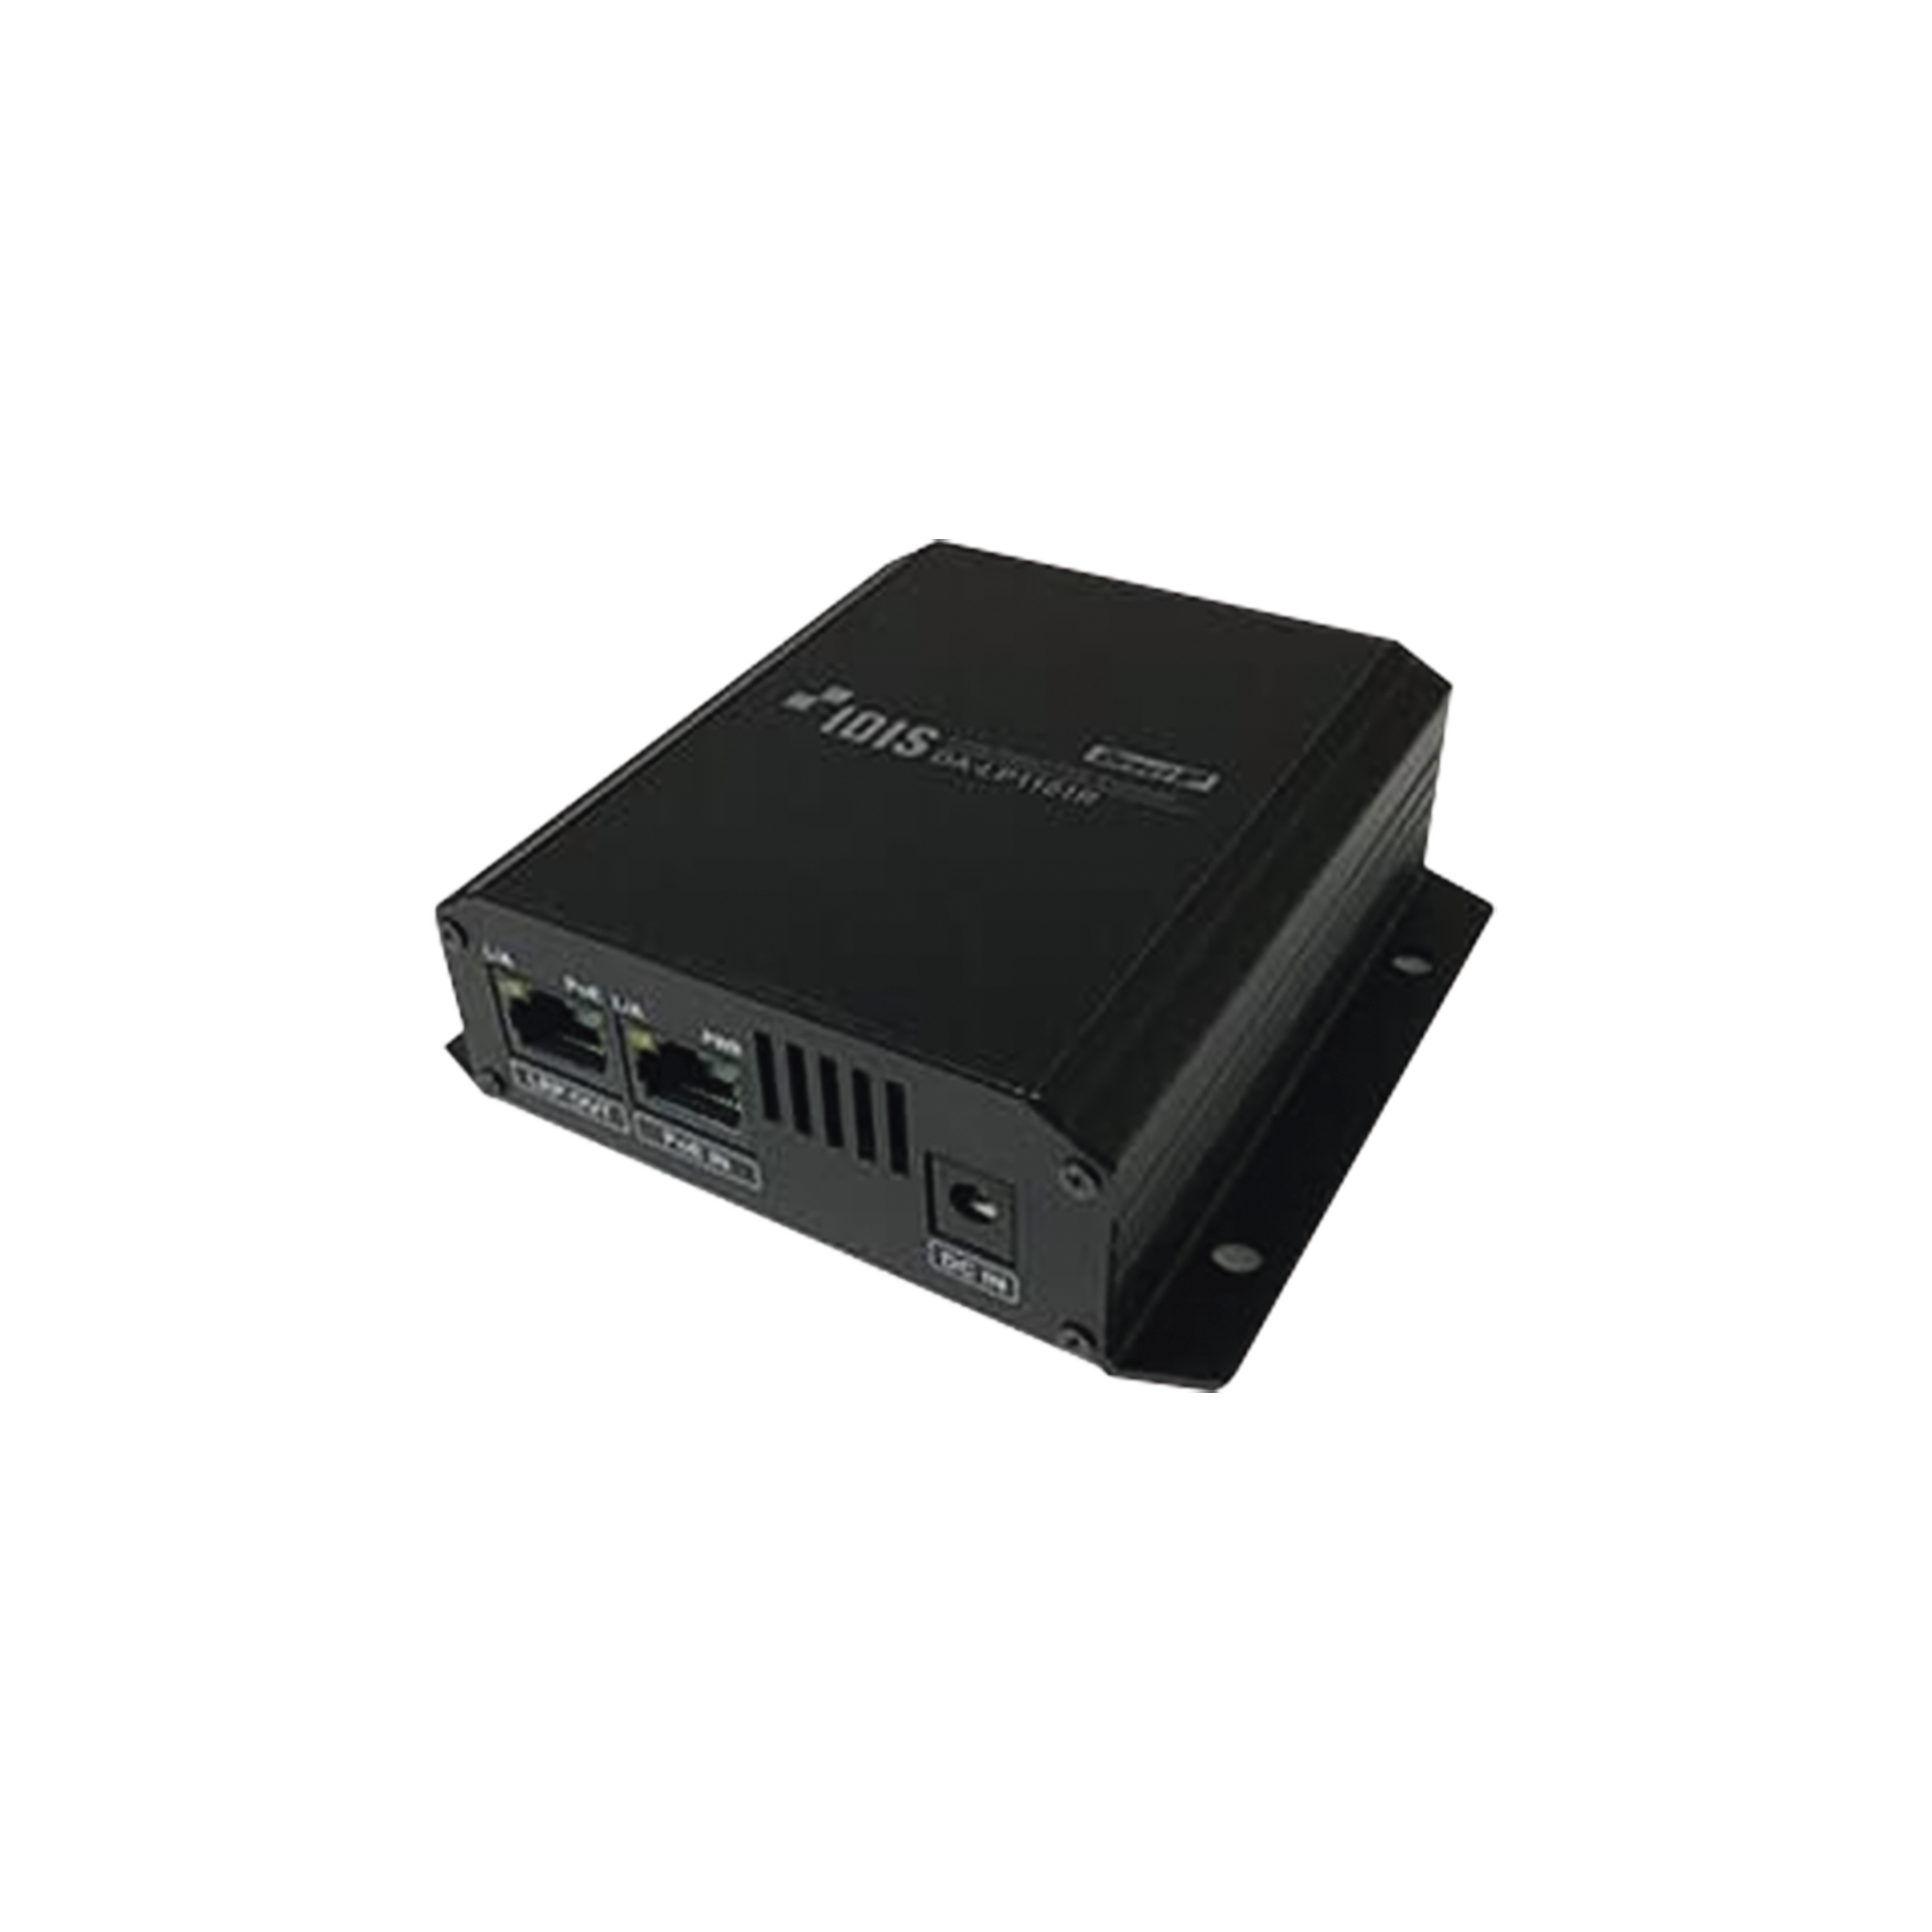 EXTENSOR POE DE LARGO ALCANCE | 500M DE PoE | 700M de DATOS  | PLUG AND PLAY | HASTA 1000Mbps EN TRANSMISION | IEEE 802.3at